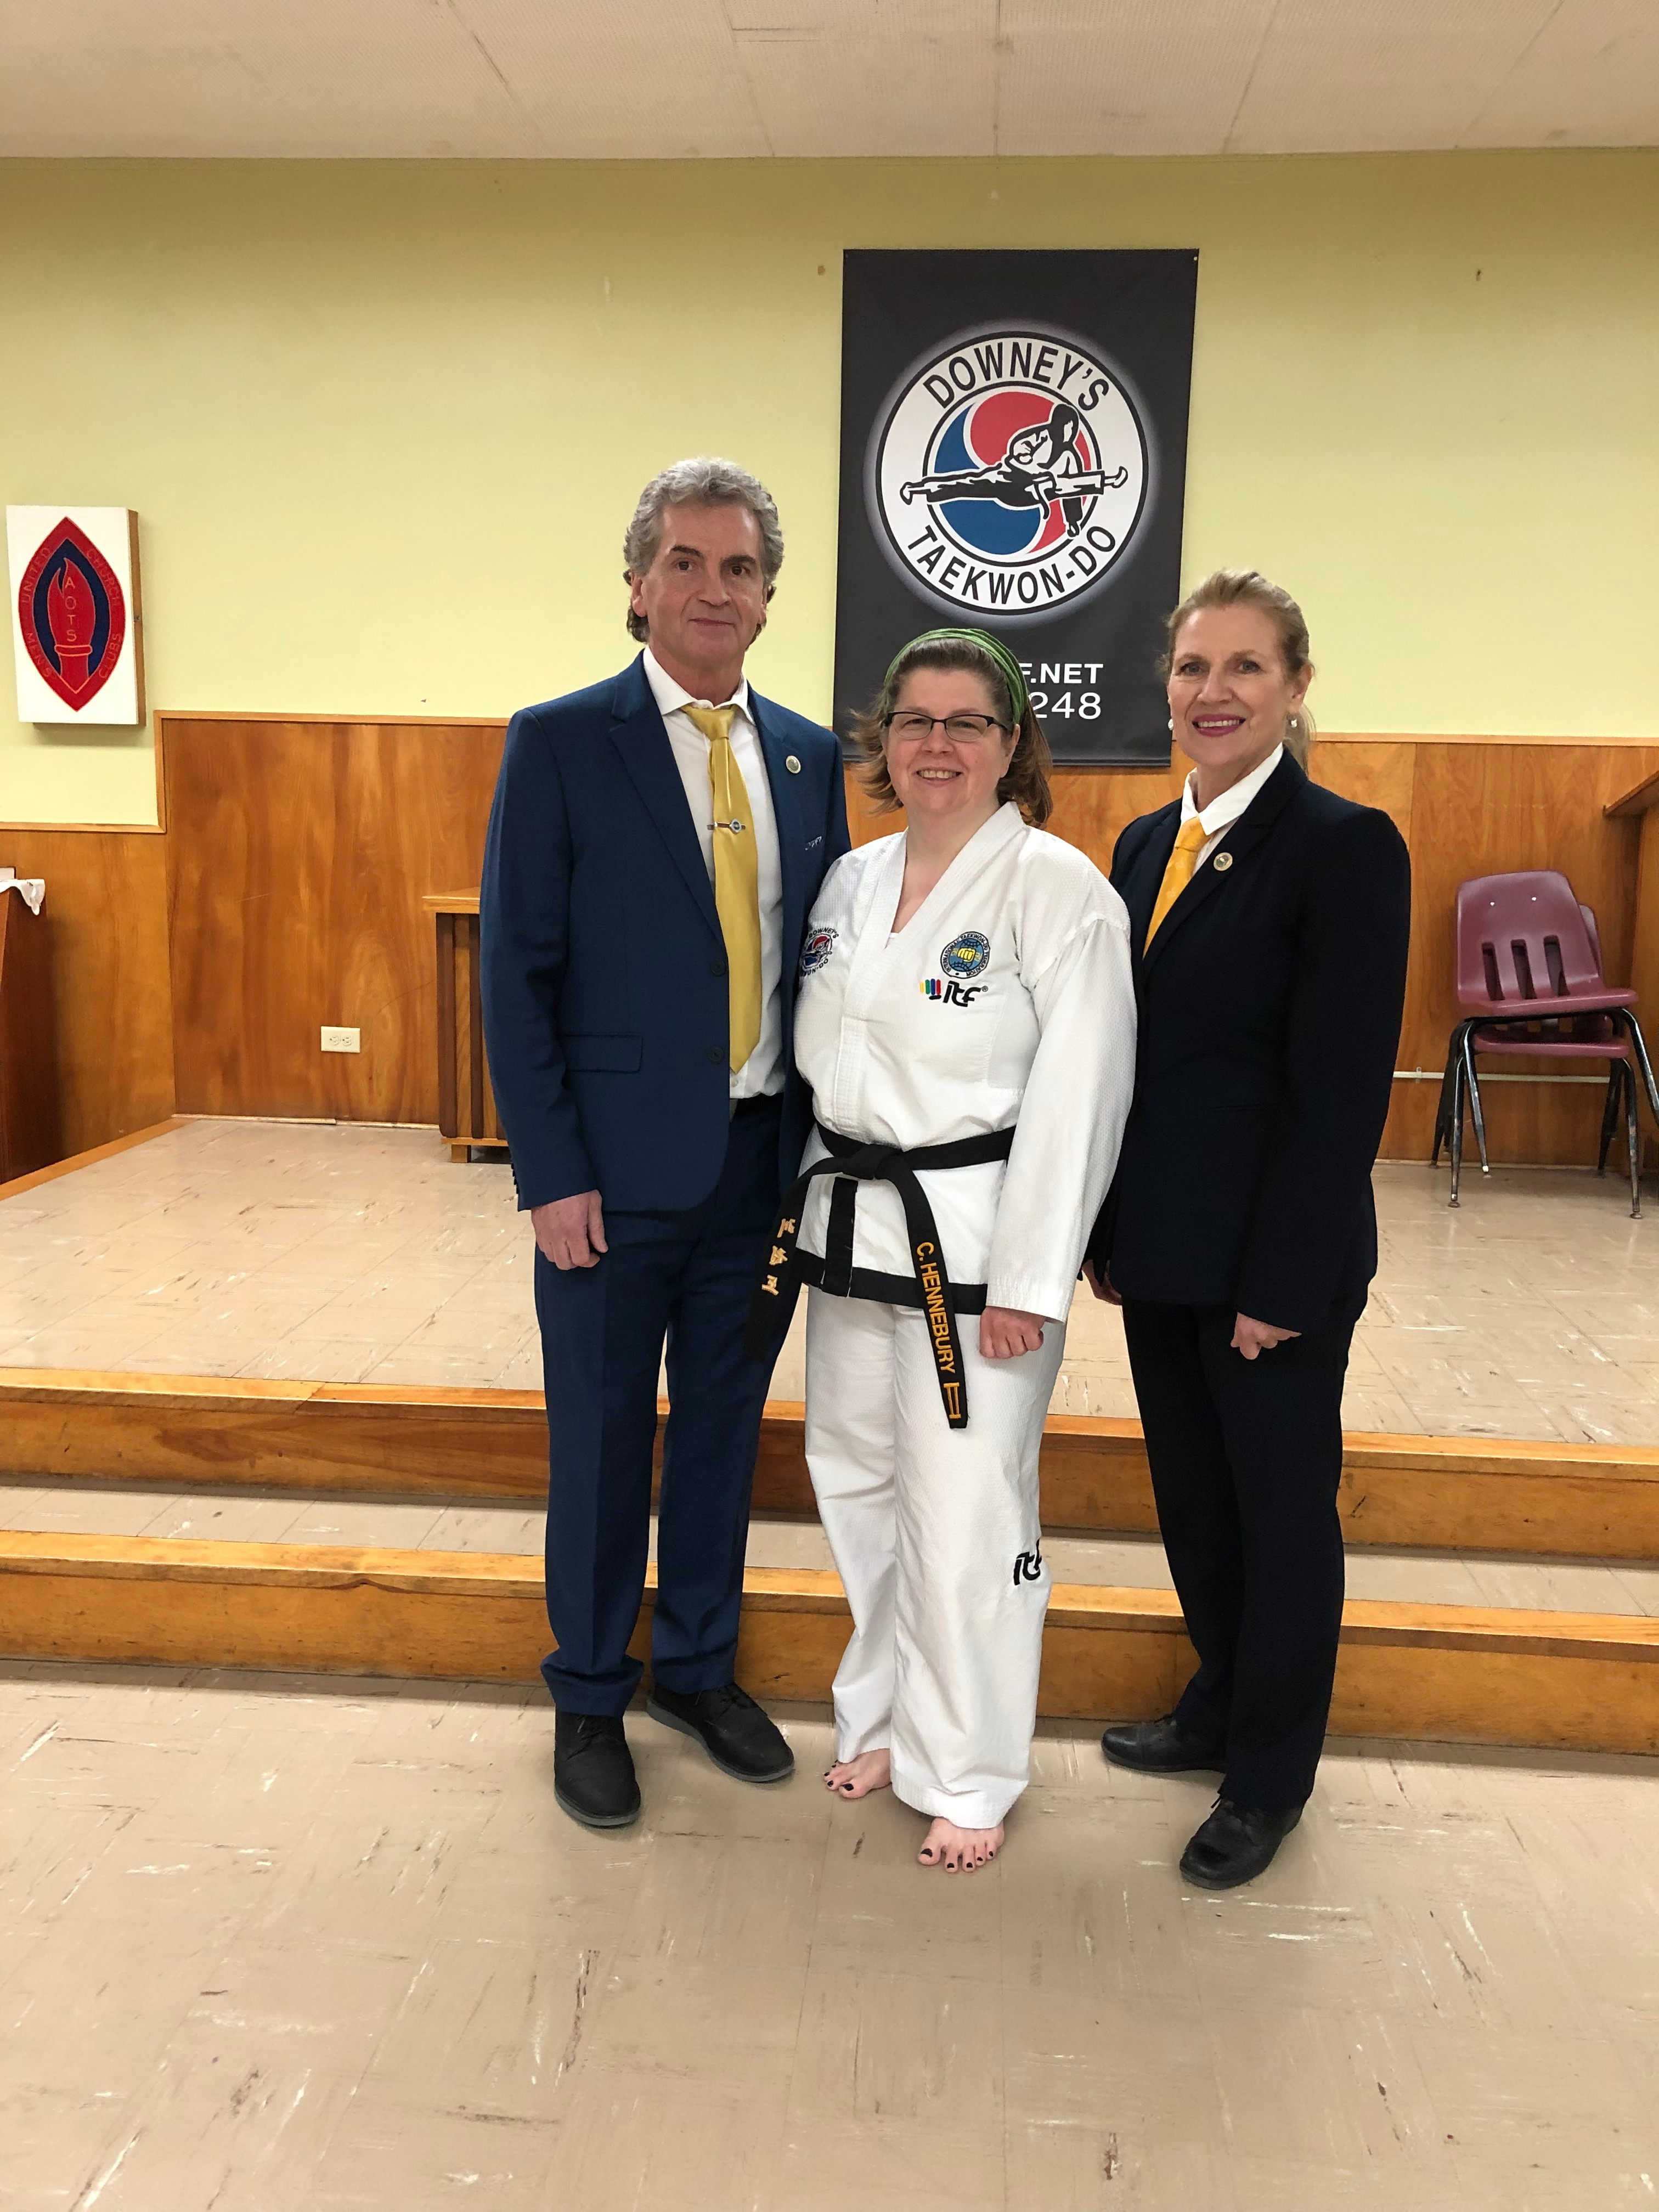 Three people stand in a gym, there is a black banner hanging on the wall behind them that reads 'Downey's Taekwon-Do' and features a graphic of a martial artist.   All three people are white, one man and one woman are wearing suits and they are standing on either side of a woman in a white martial arts uniform.